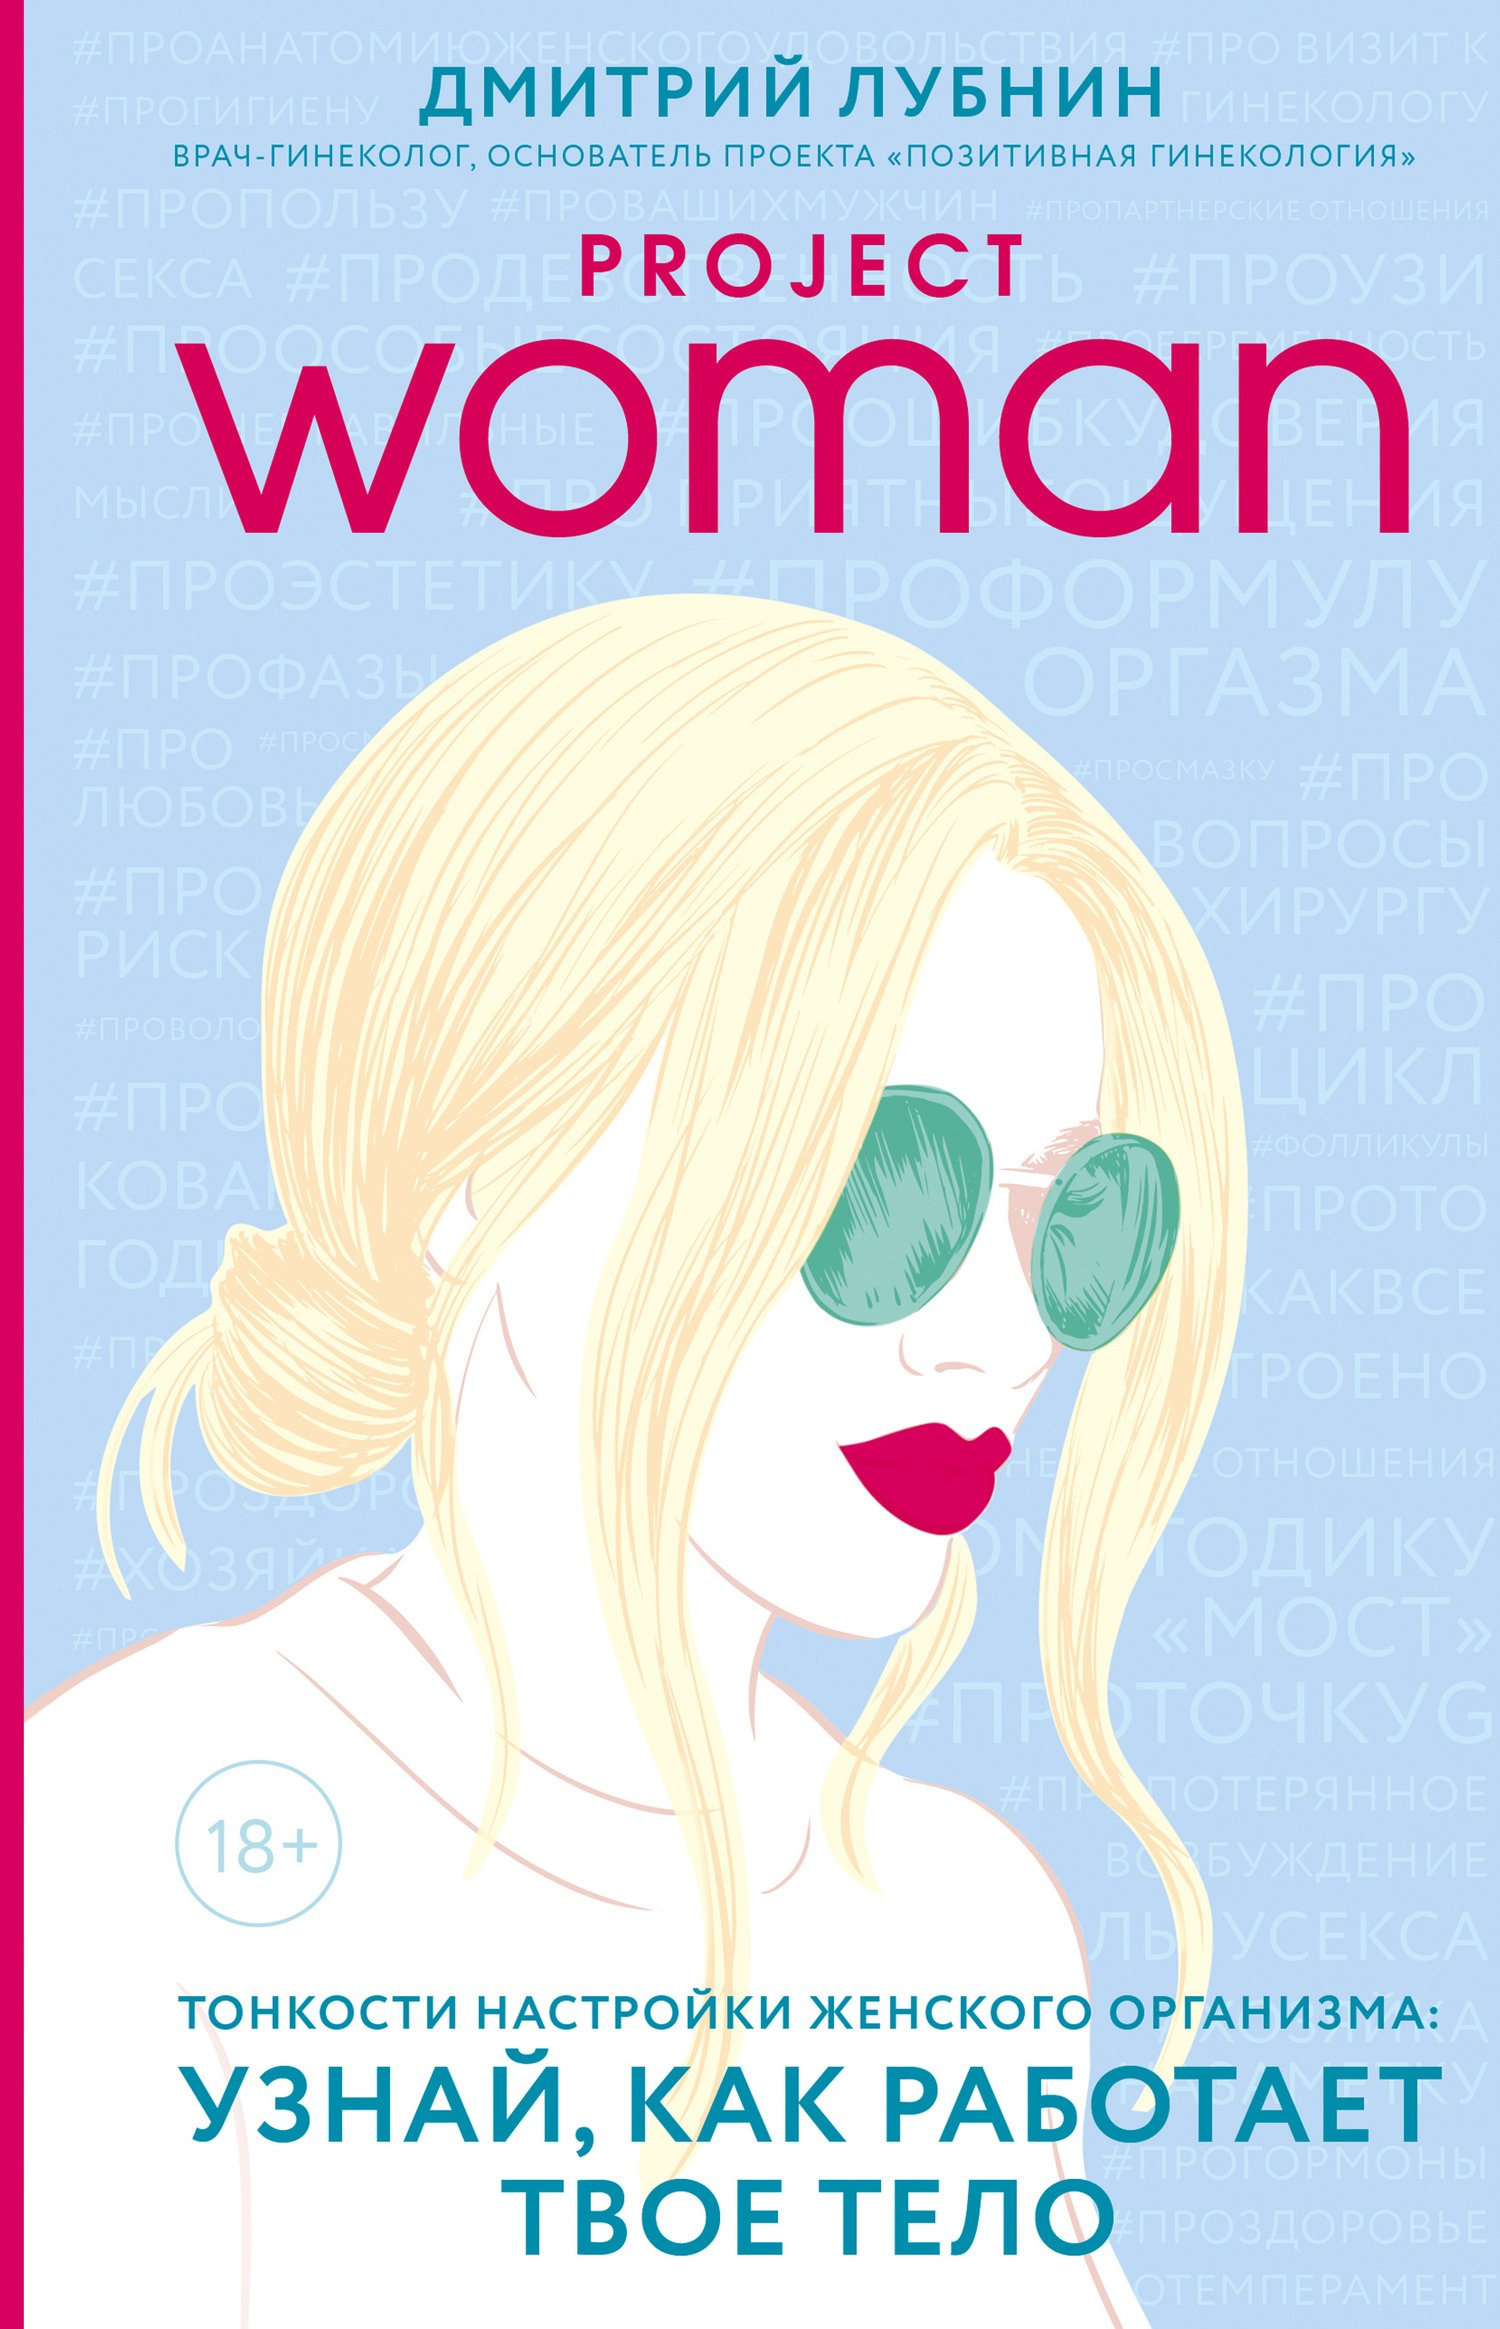 Project woman